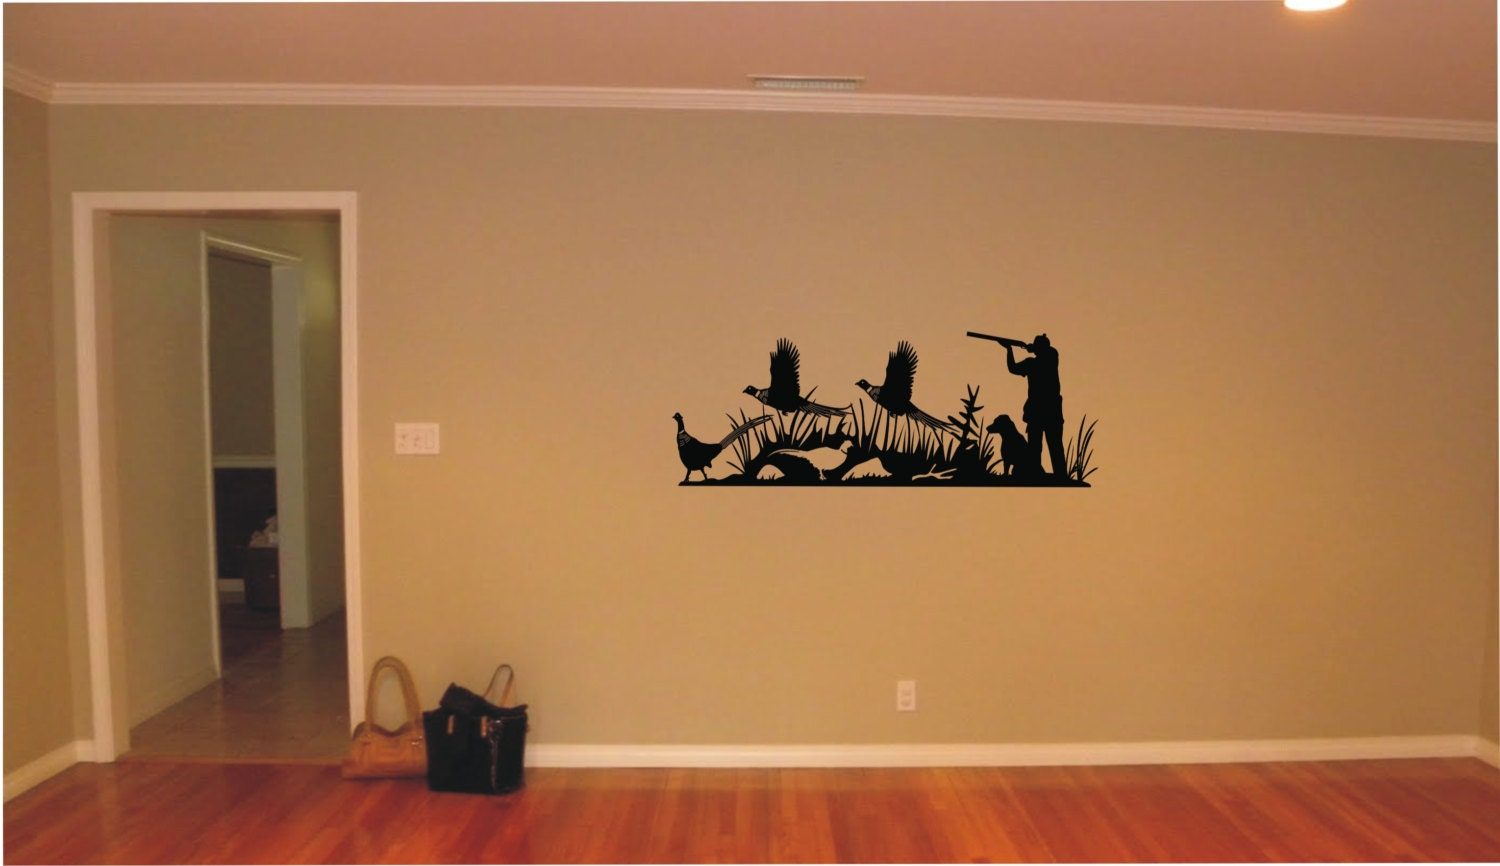 Hunting vinyl decal wall sticker wall tattoo by tibi291 on for Hunting wall decals